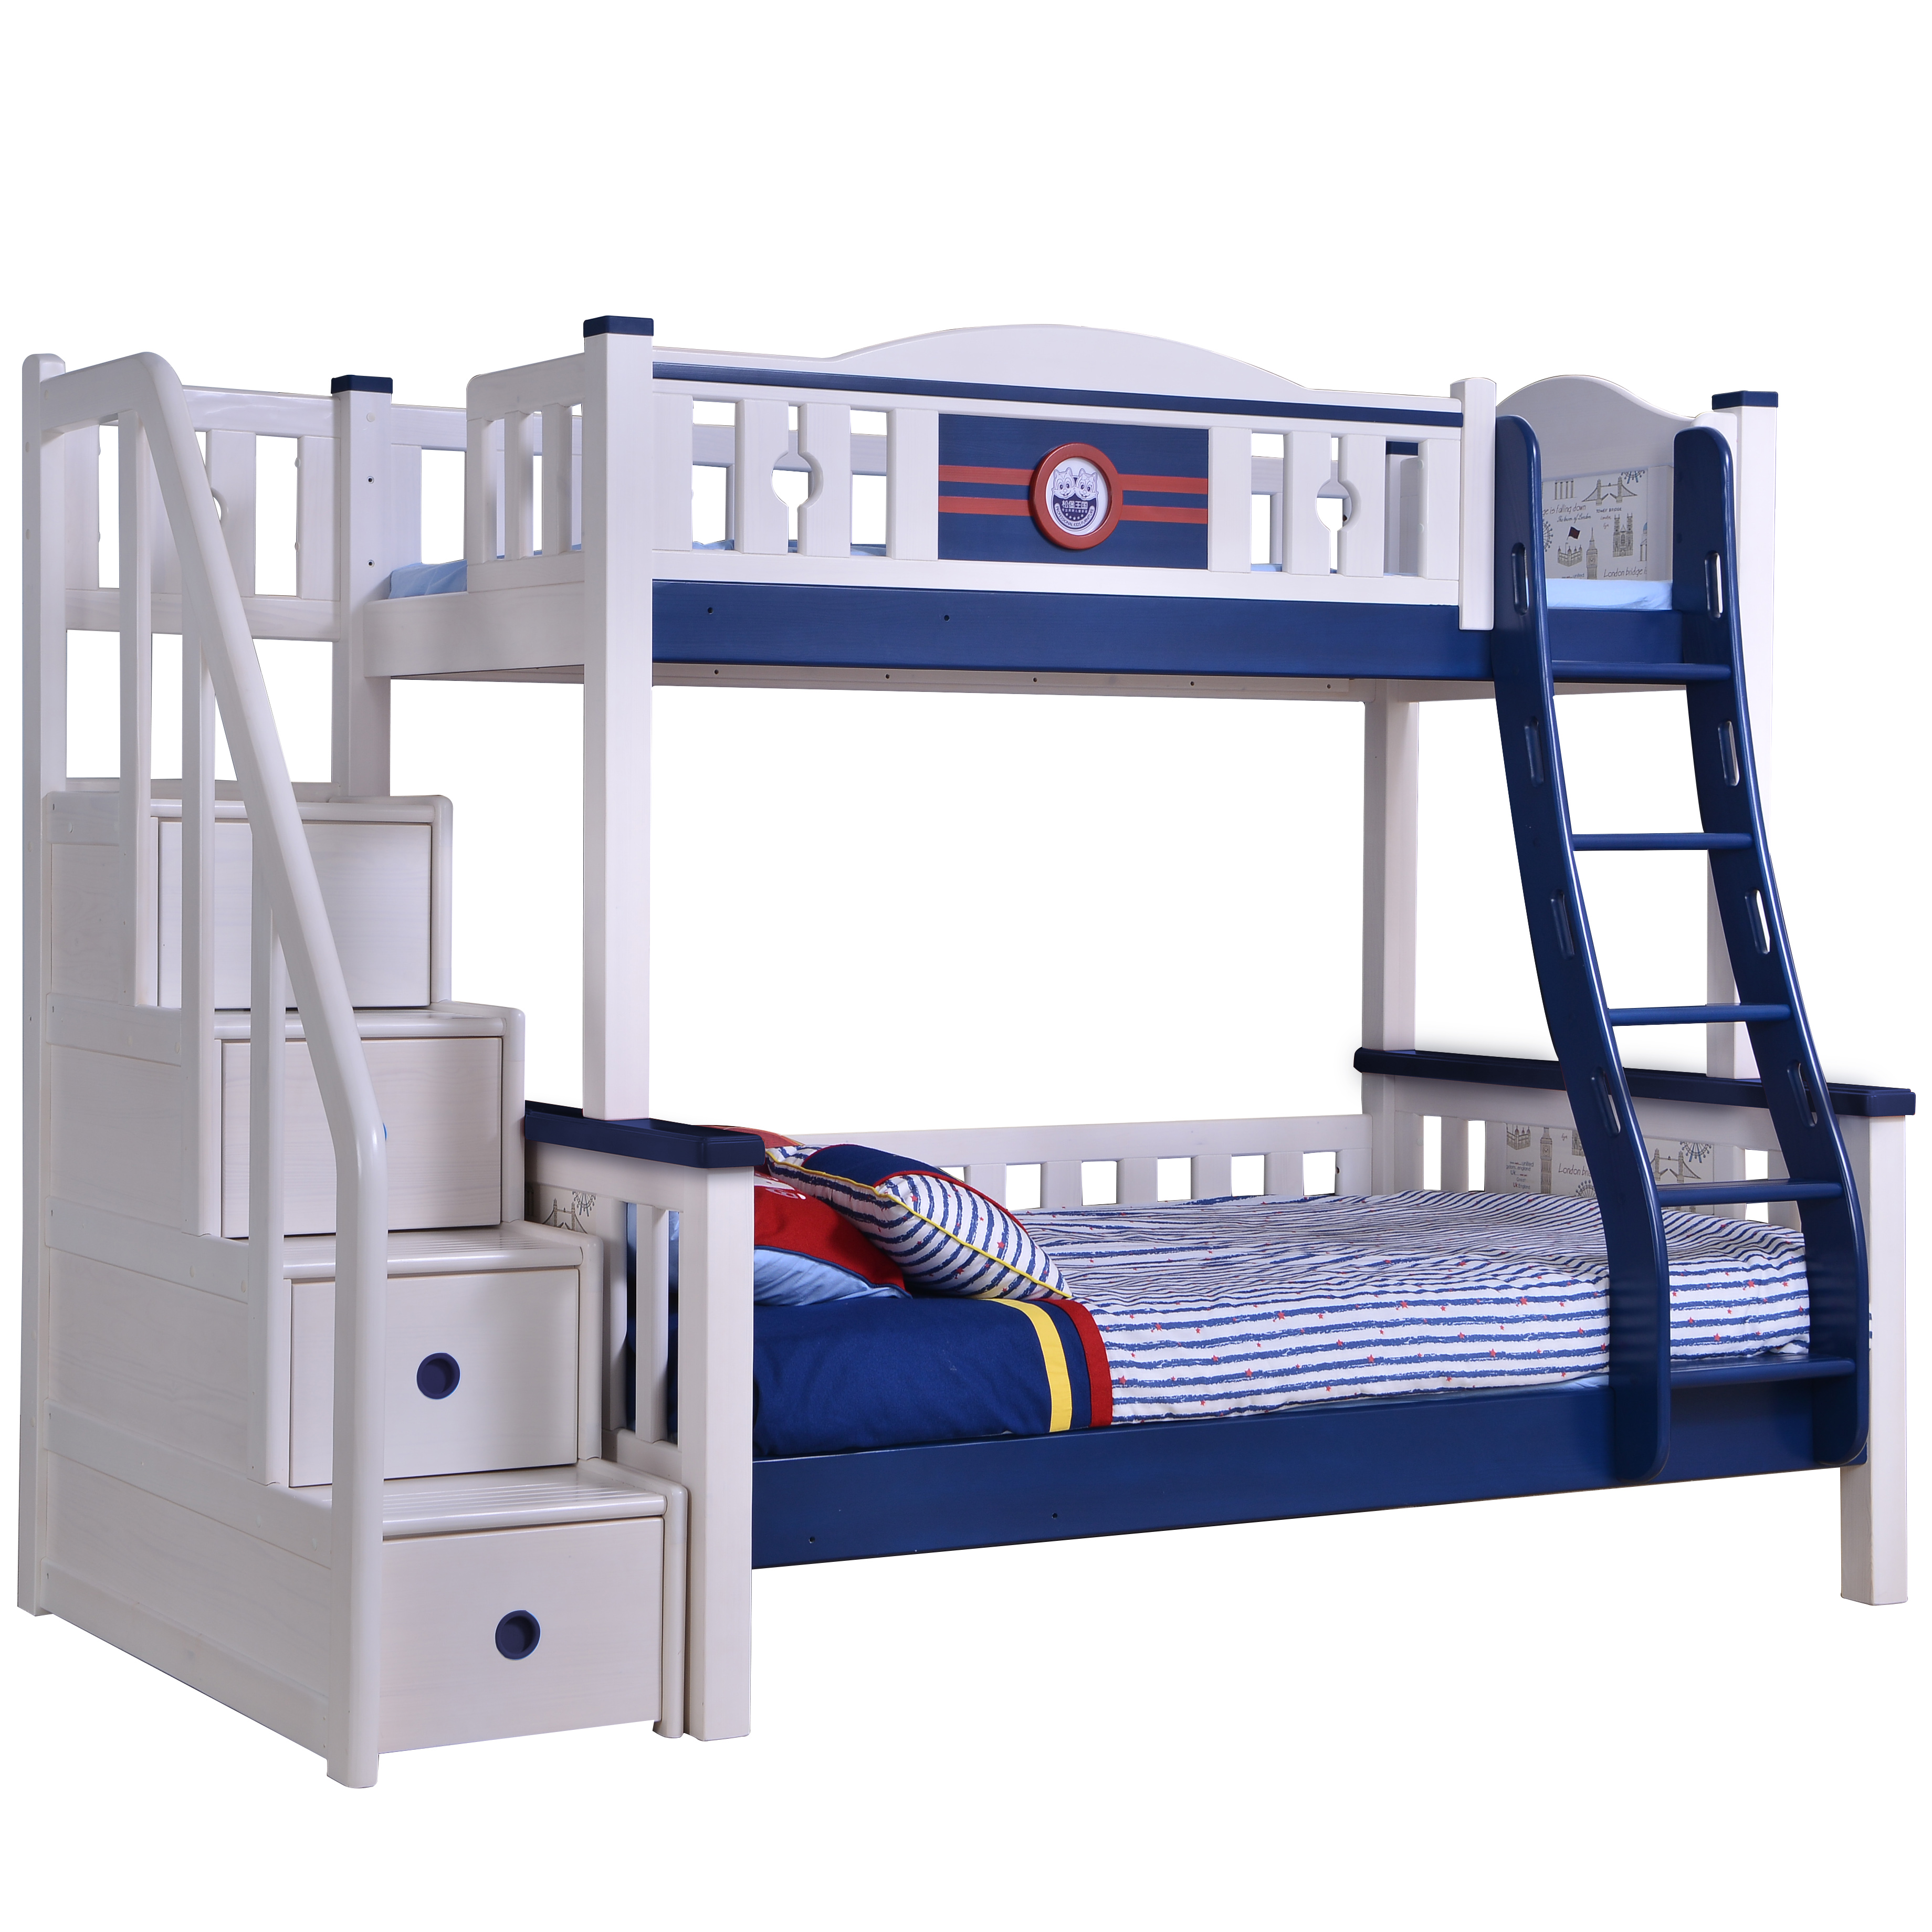 Twin Size Loft Kids Wooden Bunk Bed For Boys Full Size Bed Queen Size Captains Bed Buy Twin Double Deck Bed Kids Furniture Cheap Bunk Beds Wooden Kid Double Deck Bed Product On